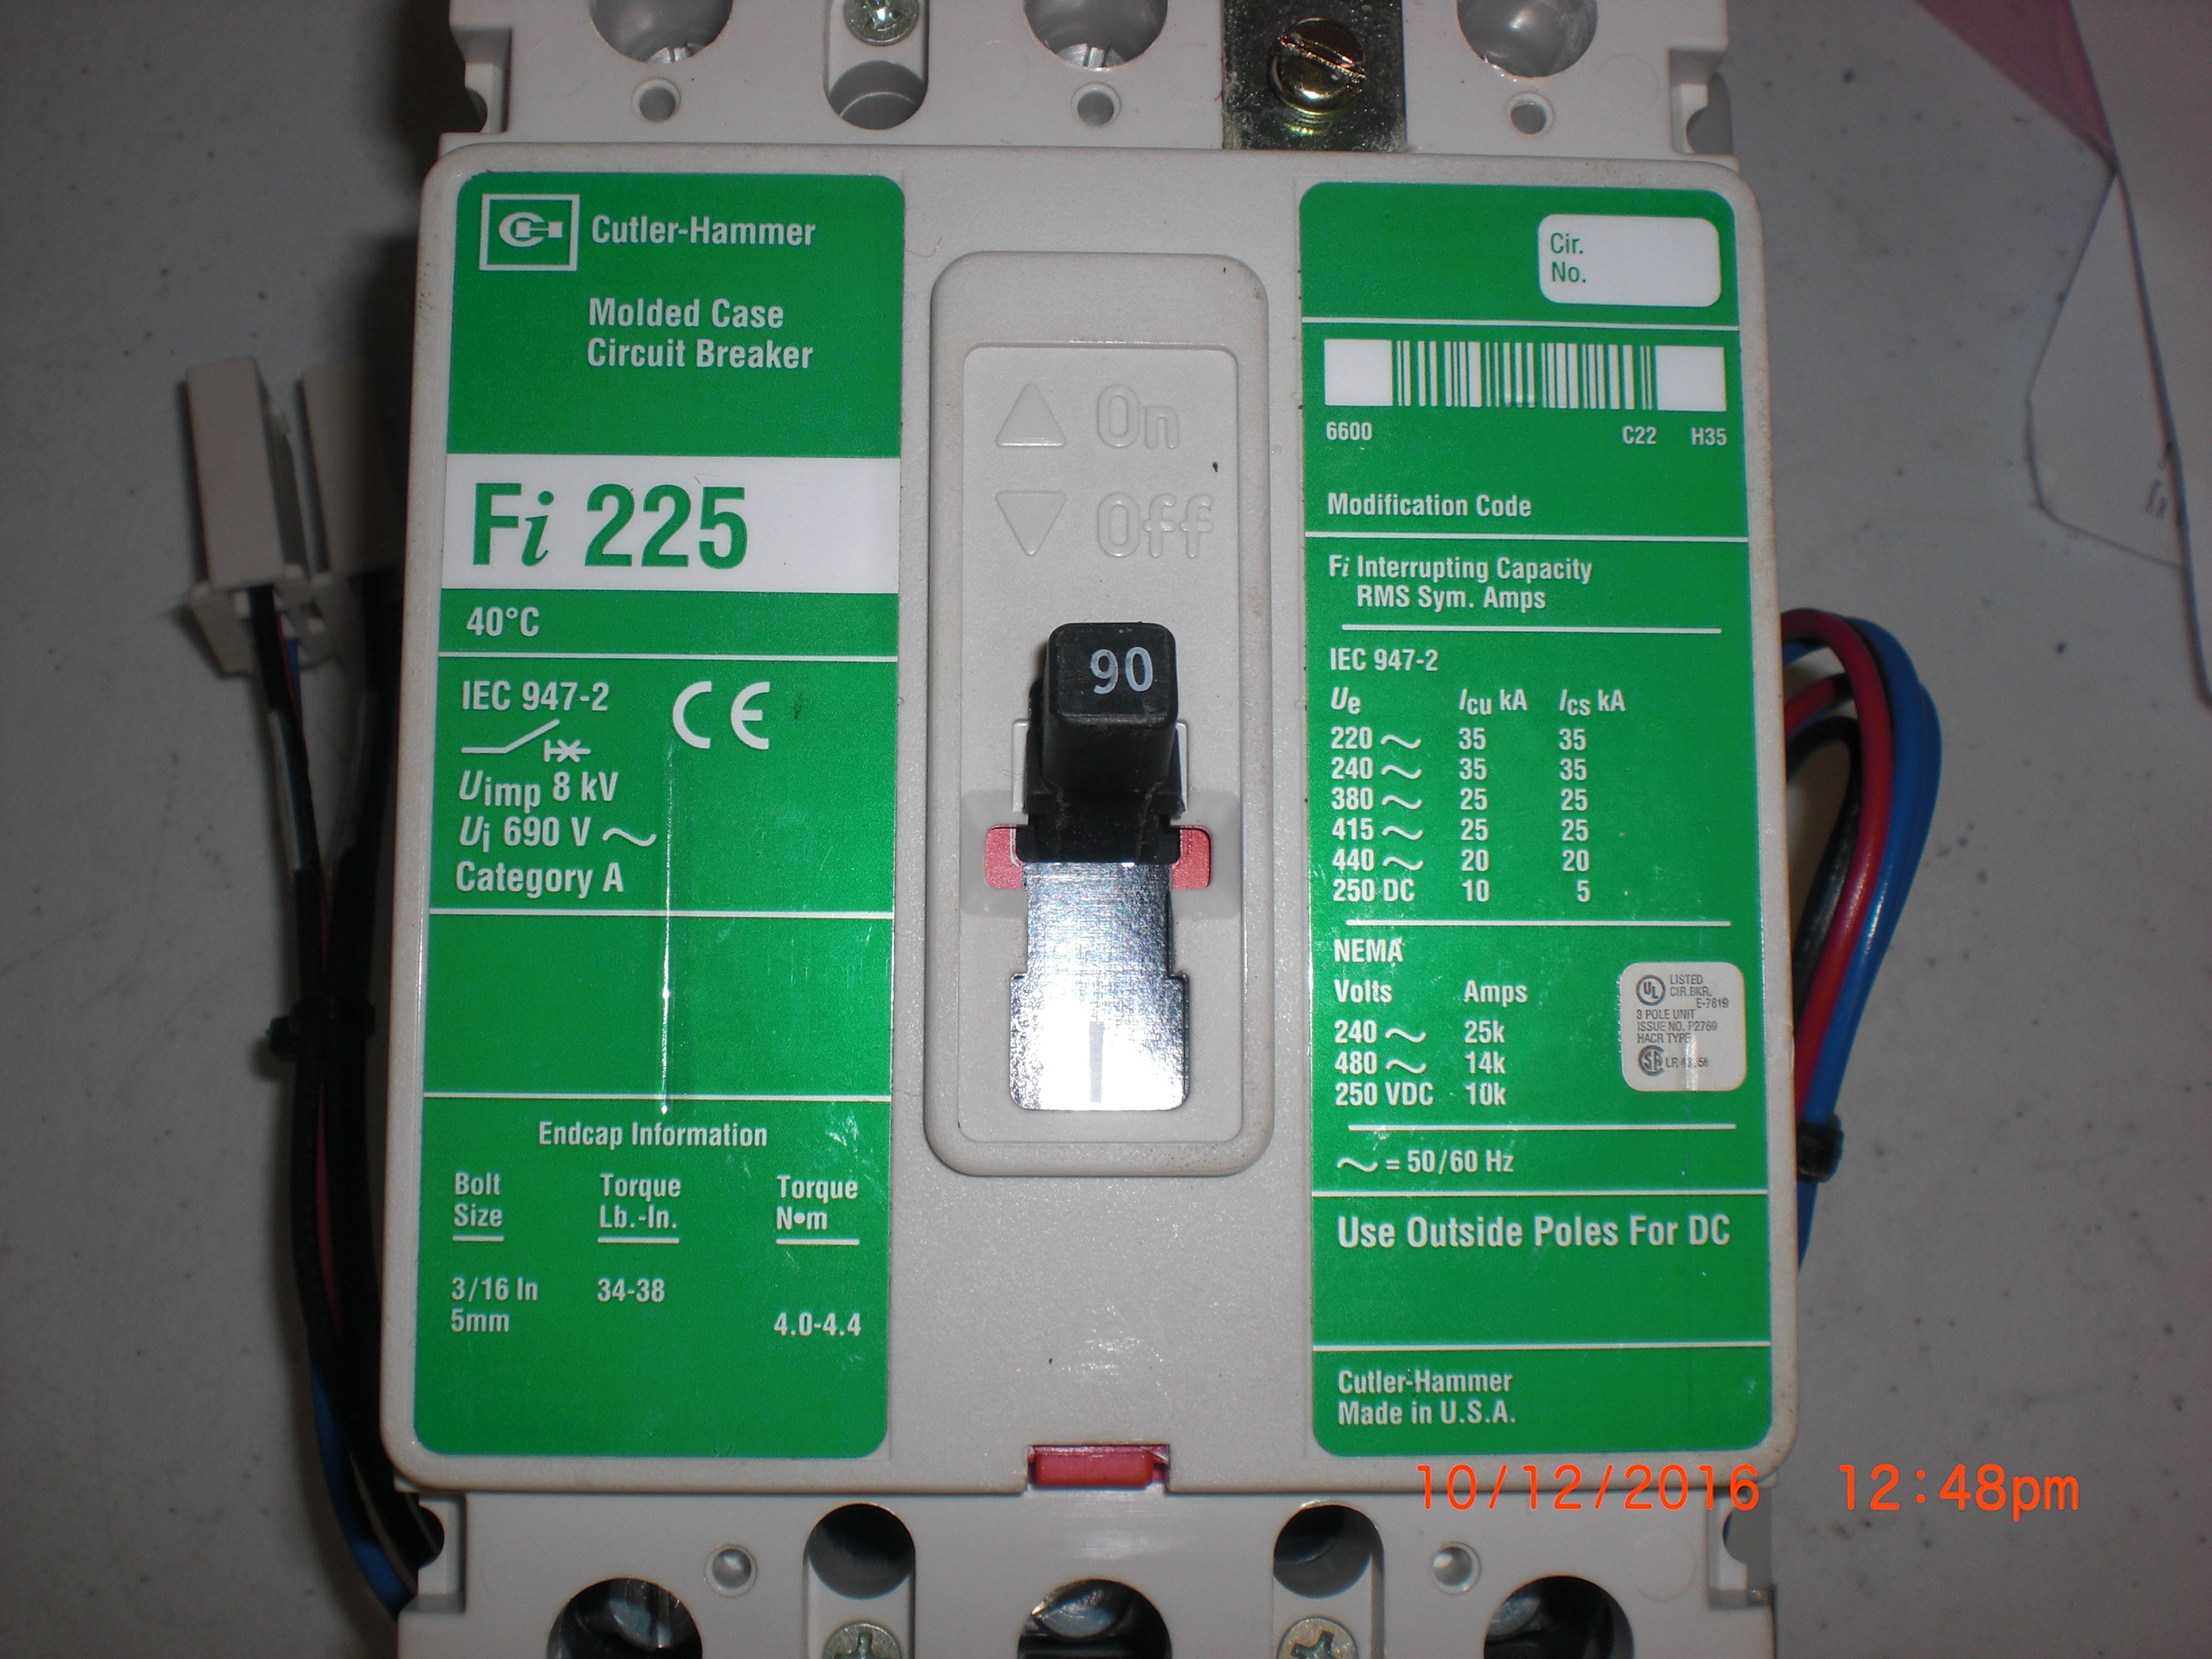 Image is loading Electrical CIRCUIT BREAKER 70A Cutler Hammer Fi225 MOLDED Electrical CIRCUIT BREAKER